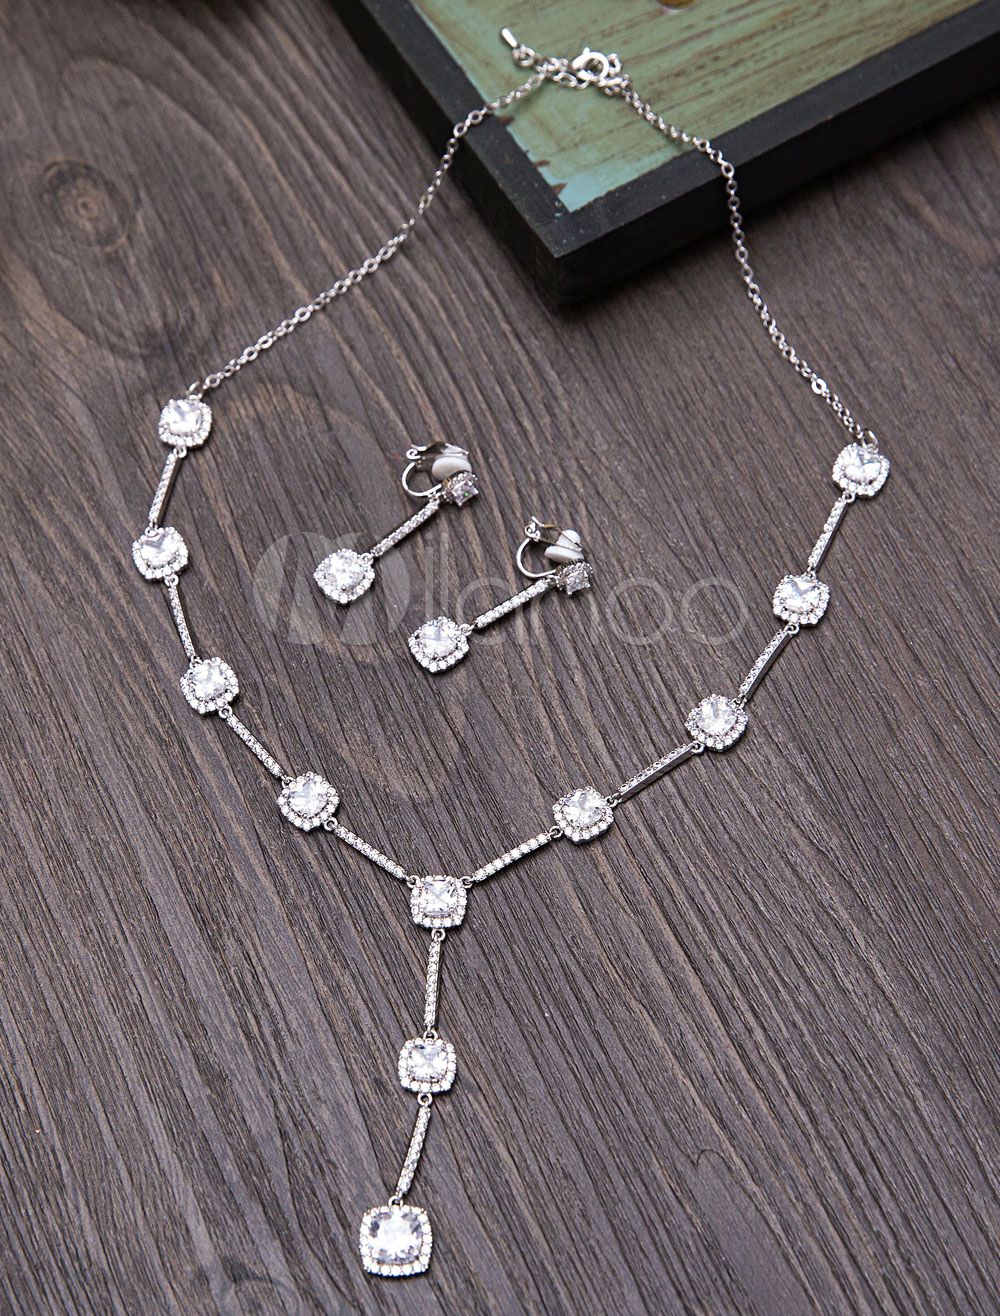 Buy Wedding Jewelry Set Silver Beaded Bridal Y Necklace With Dangle Earrings for $46.79 in Milanoo store